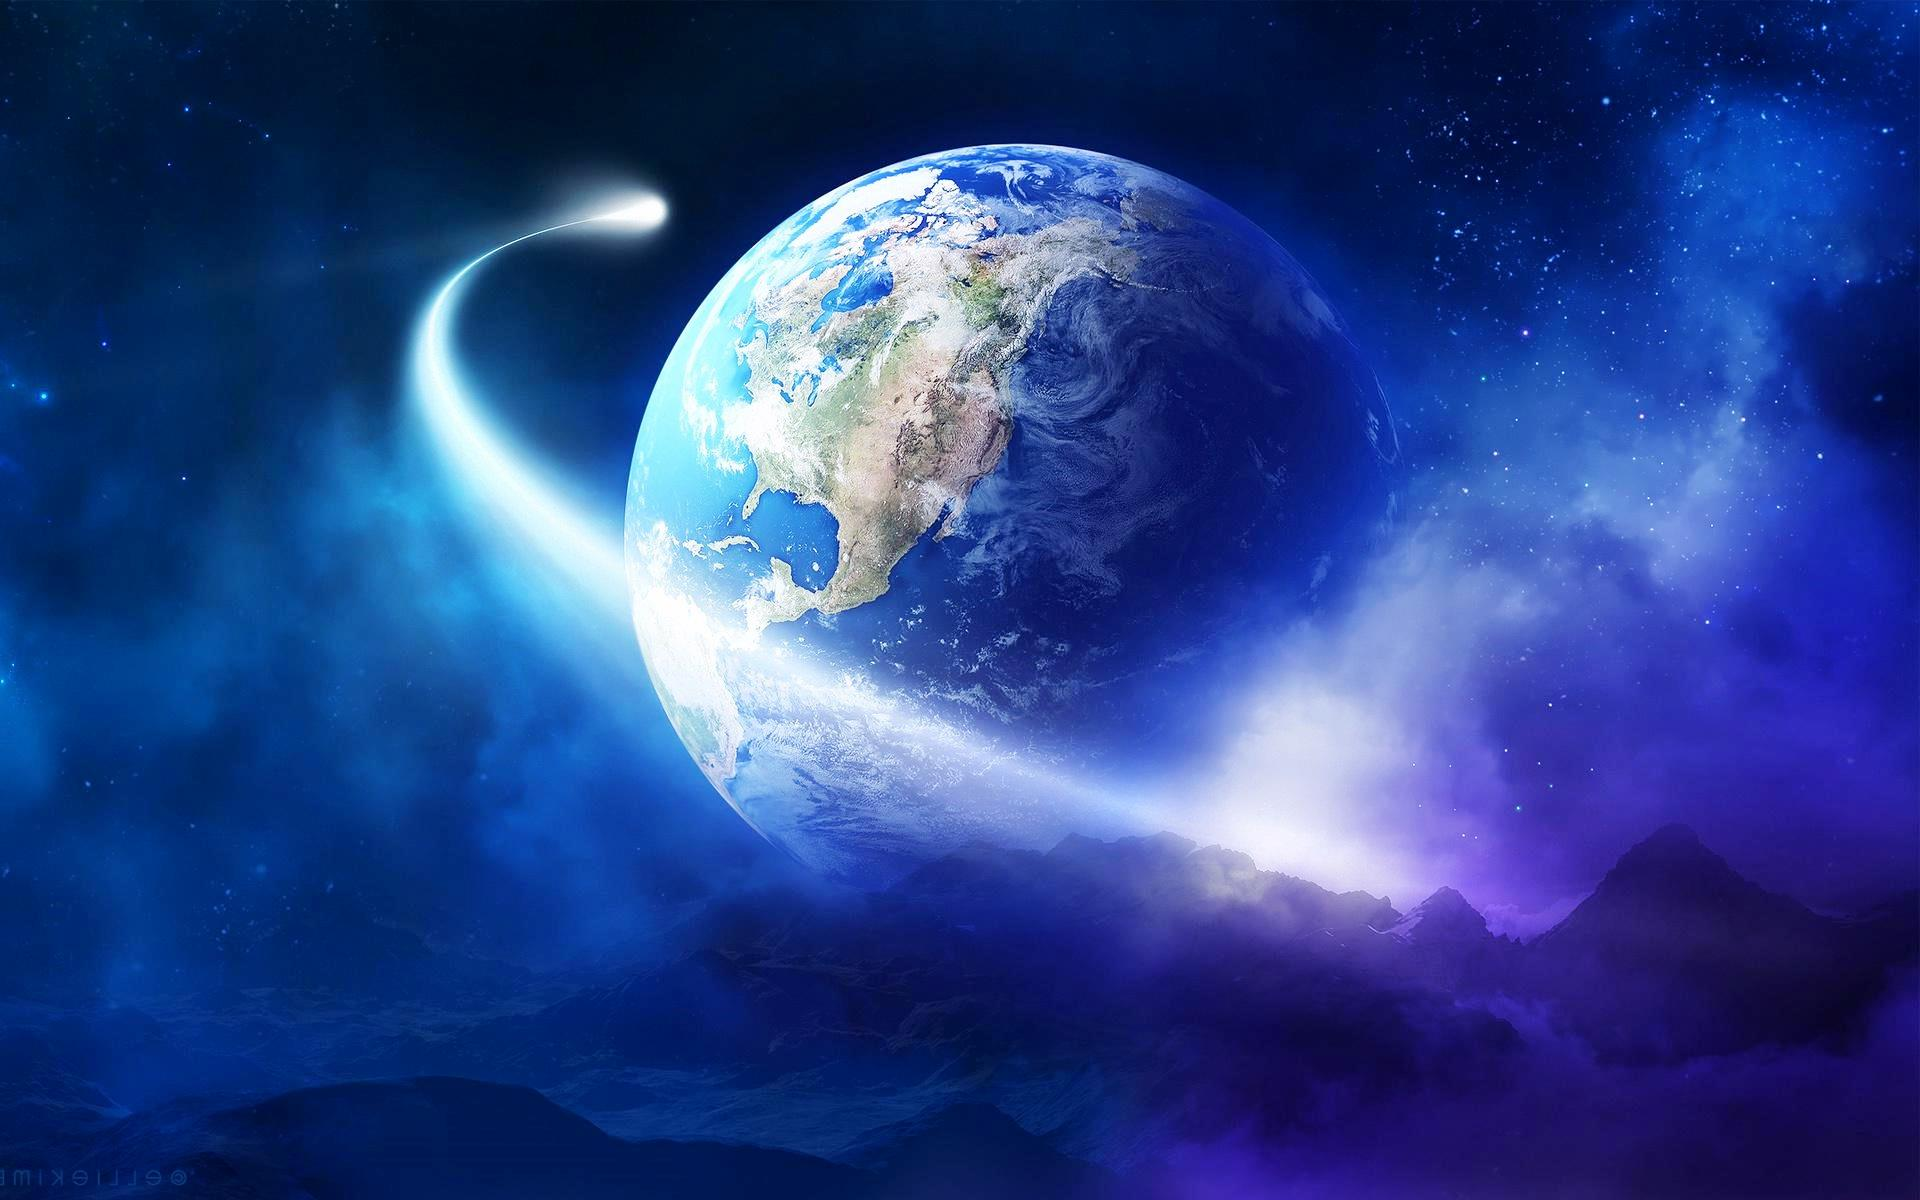 Earth From Space Wallpaper Hd Background Wallpaper